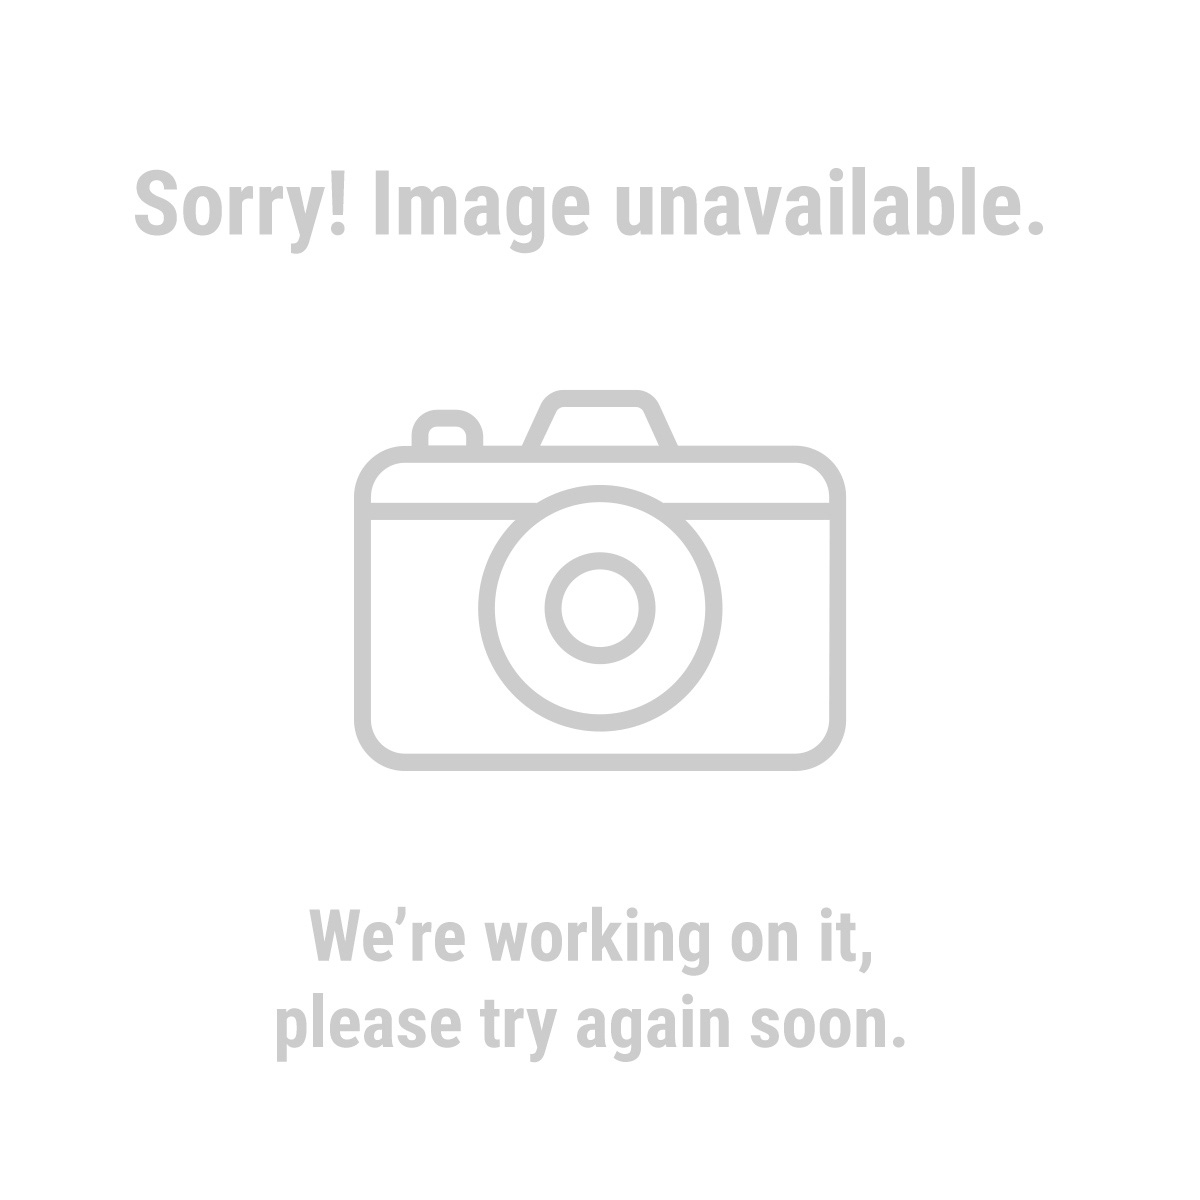 Pittsburgh Automotive 62326 3 ton Low Profile Steel Heavy Duty Floor Jack with Rapid Pump®